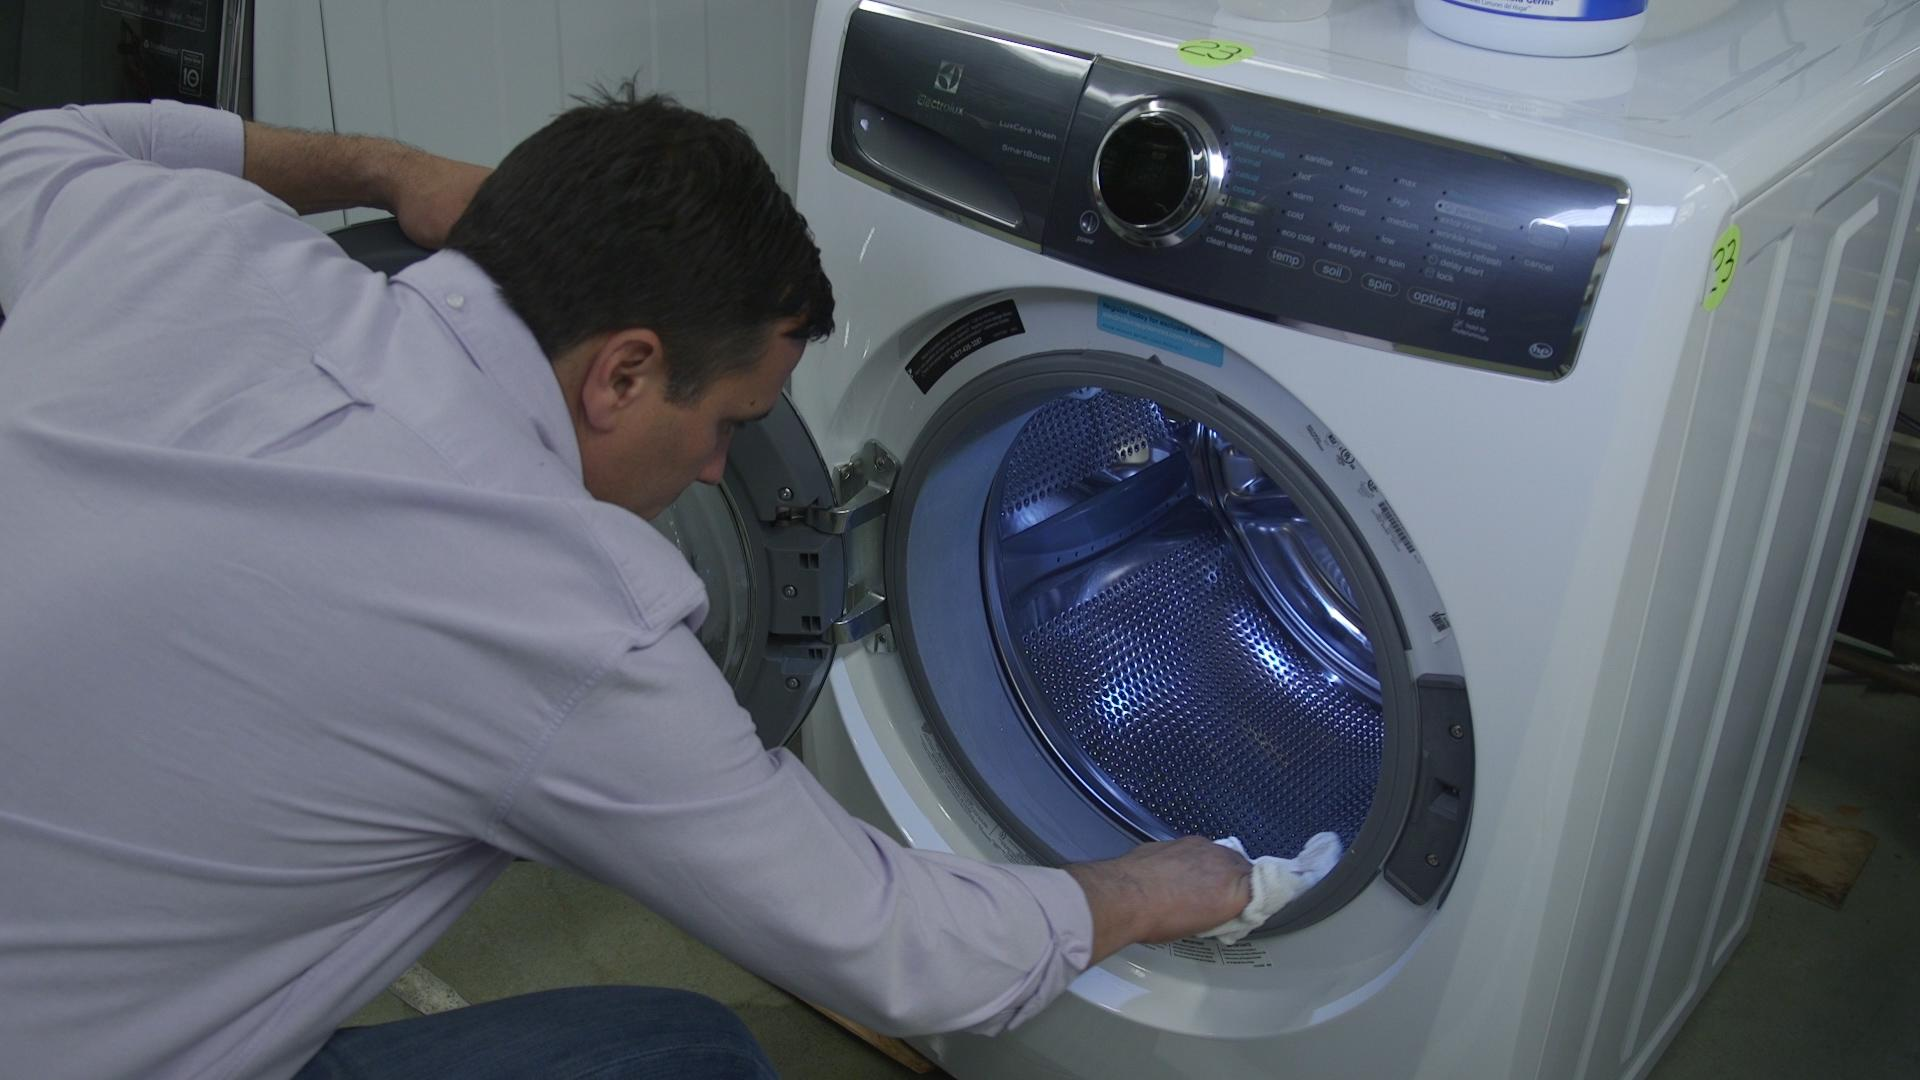 How To Clean Your Washing Machine Consumer Reports - Clean washing machine ideas